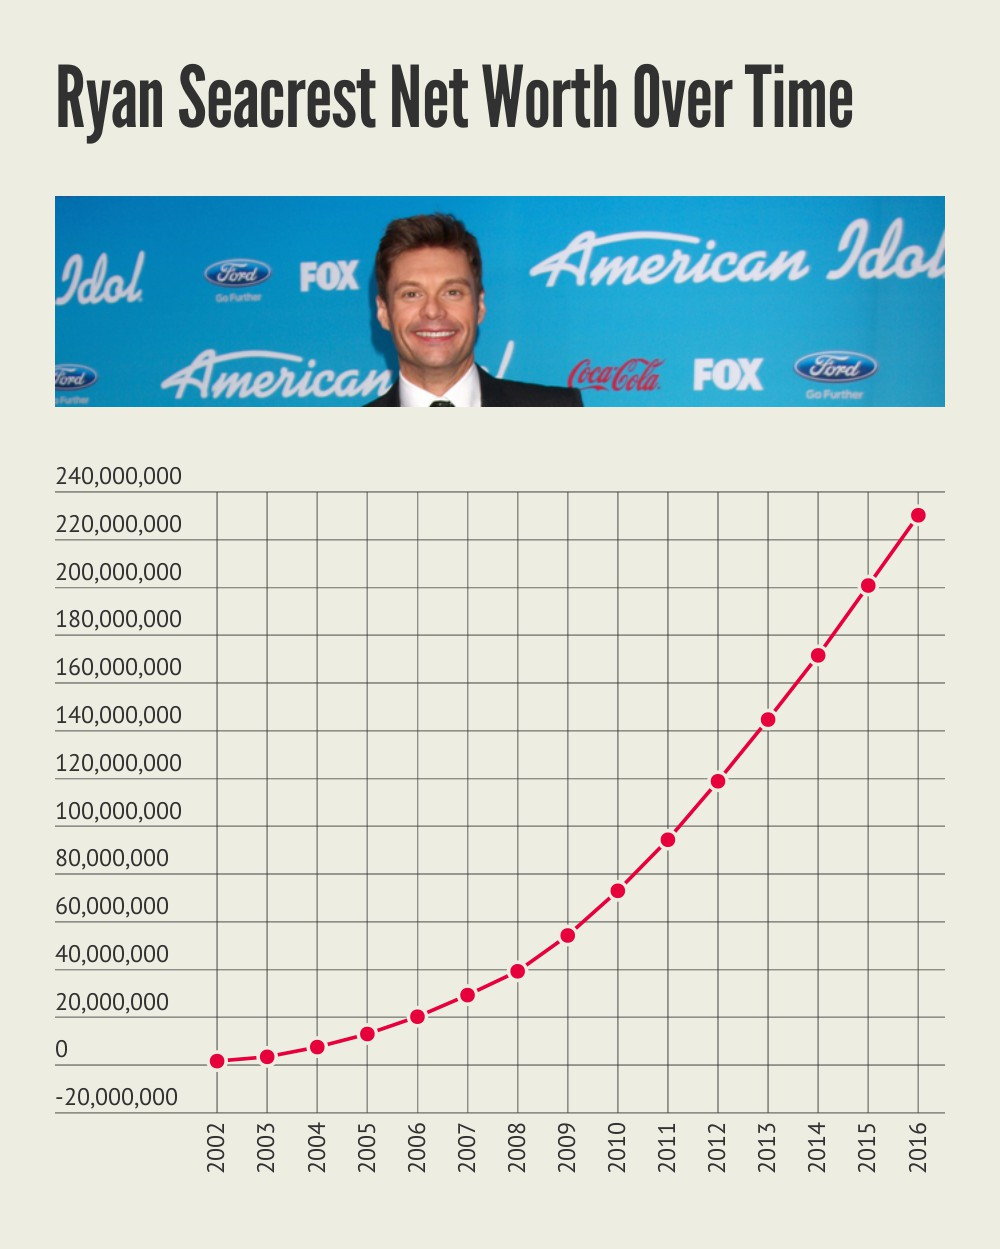 Ryan Seacrest Net Worth Over Time